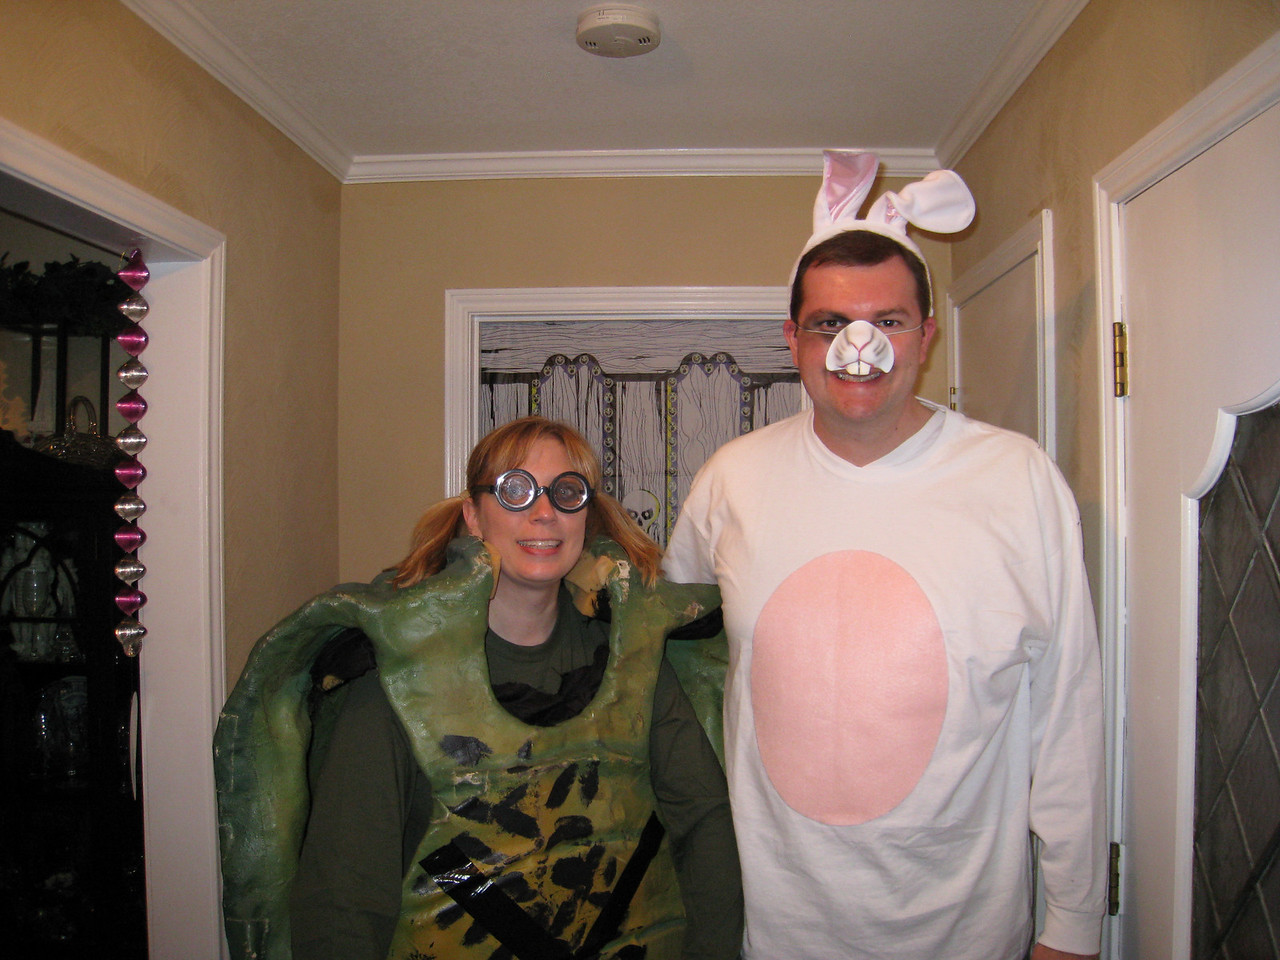 Deena and Sean - The tortoise and the hare that got run over.